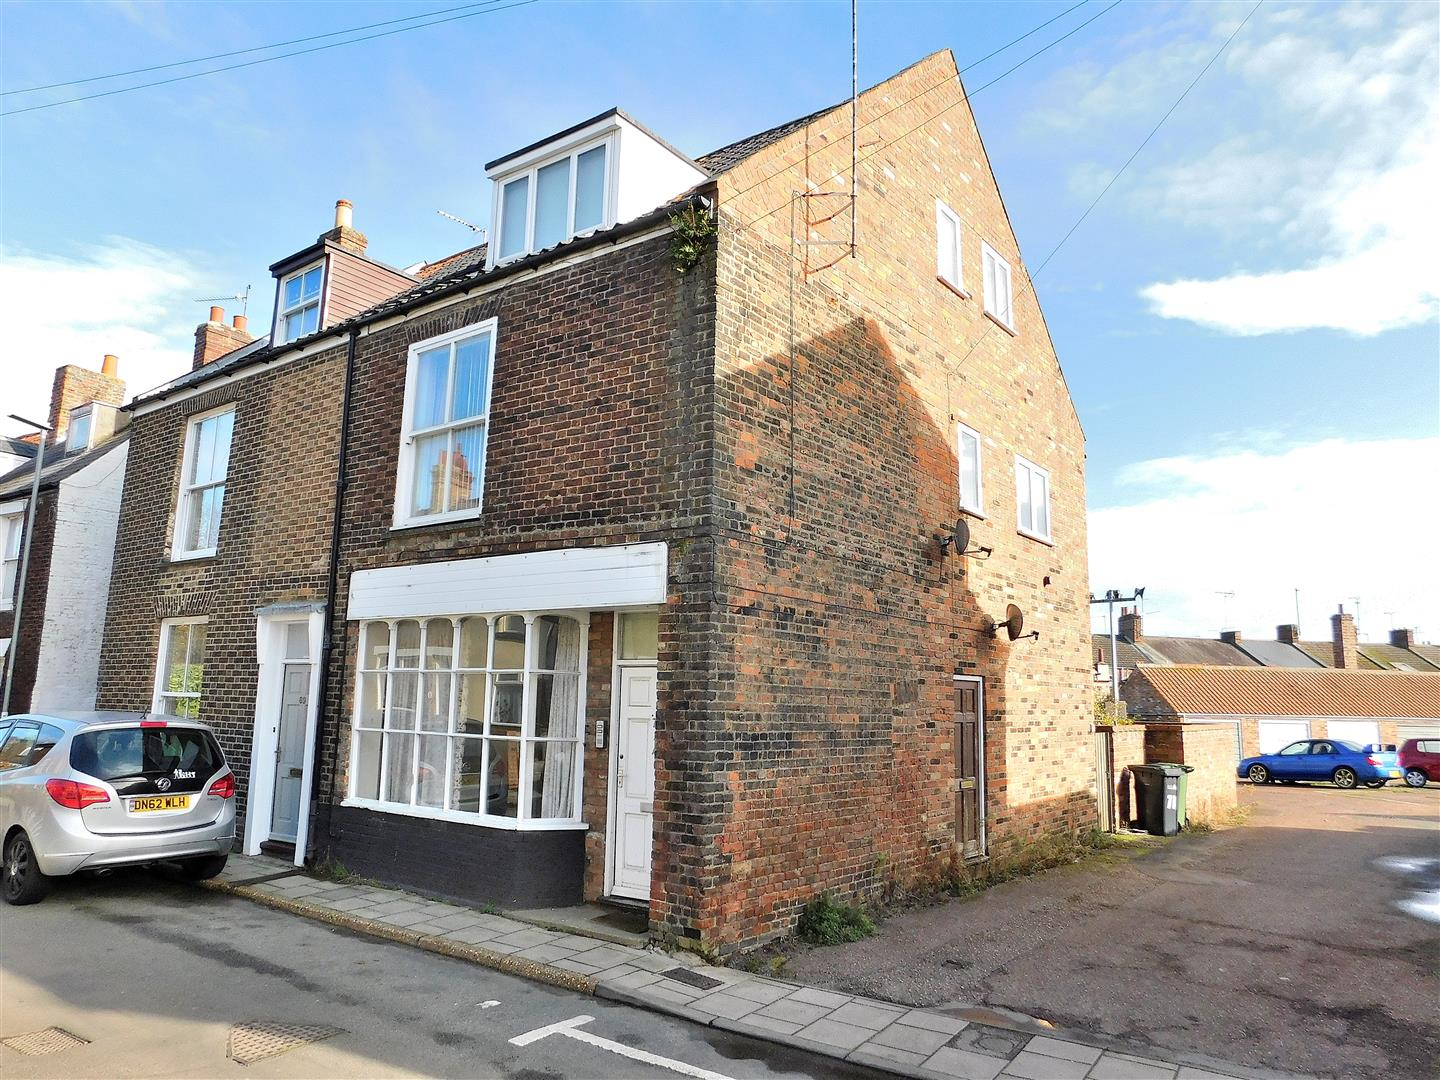 2 bed flat for sale in King's Lynn, PE30 5AP, PE30